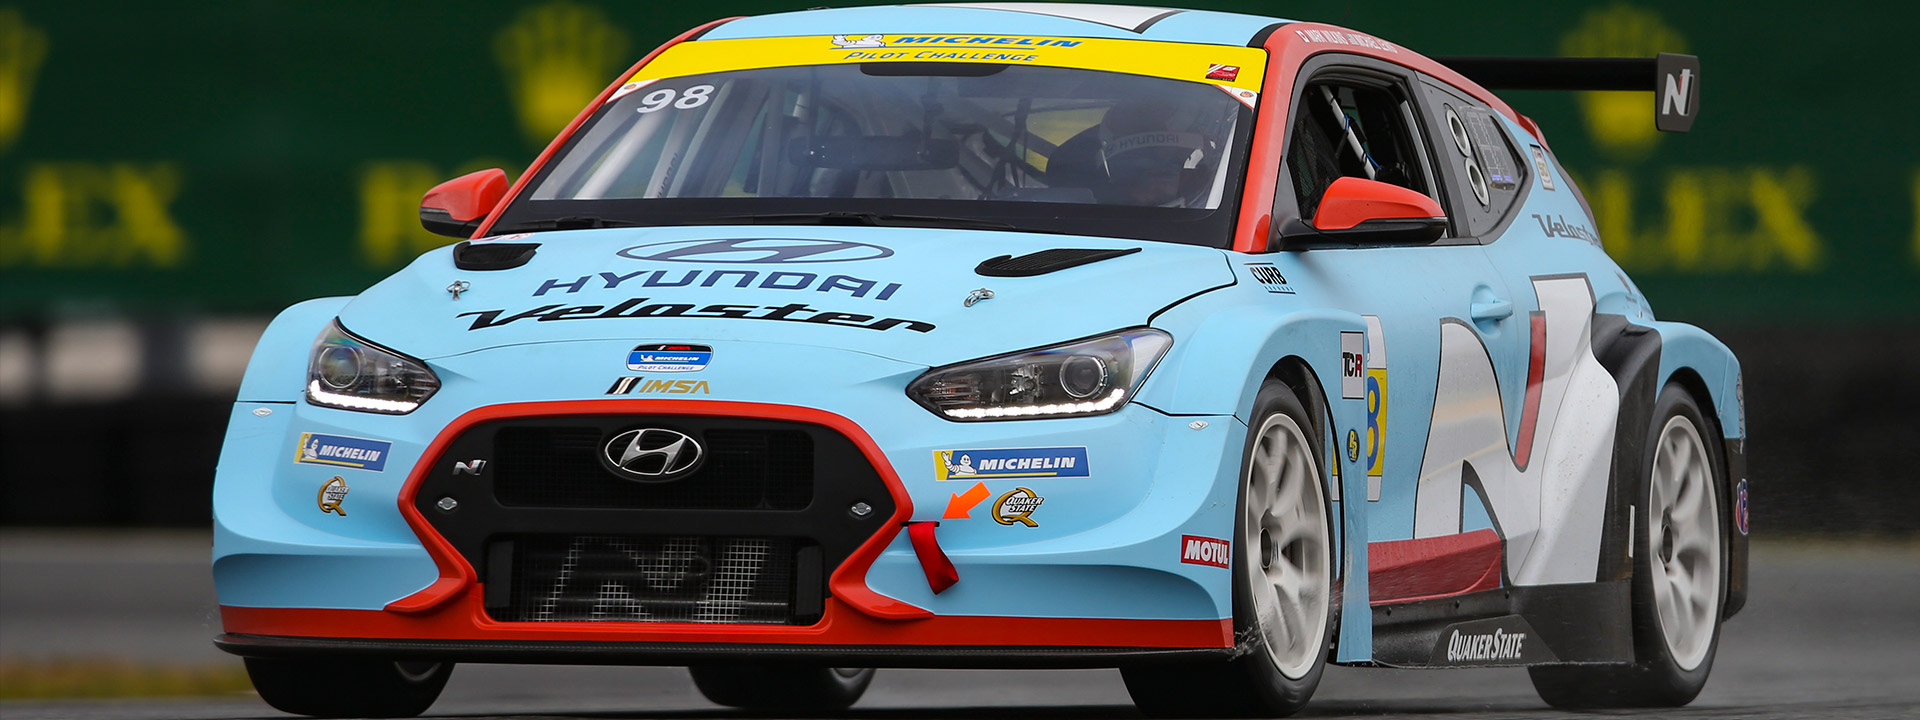 Hyundai Motorsport begin 2019 Nürburgring Nordschleife in VLN1